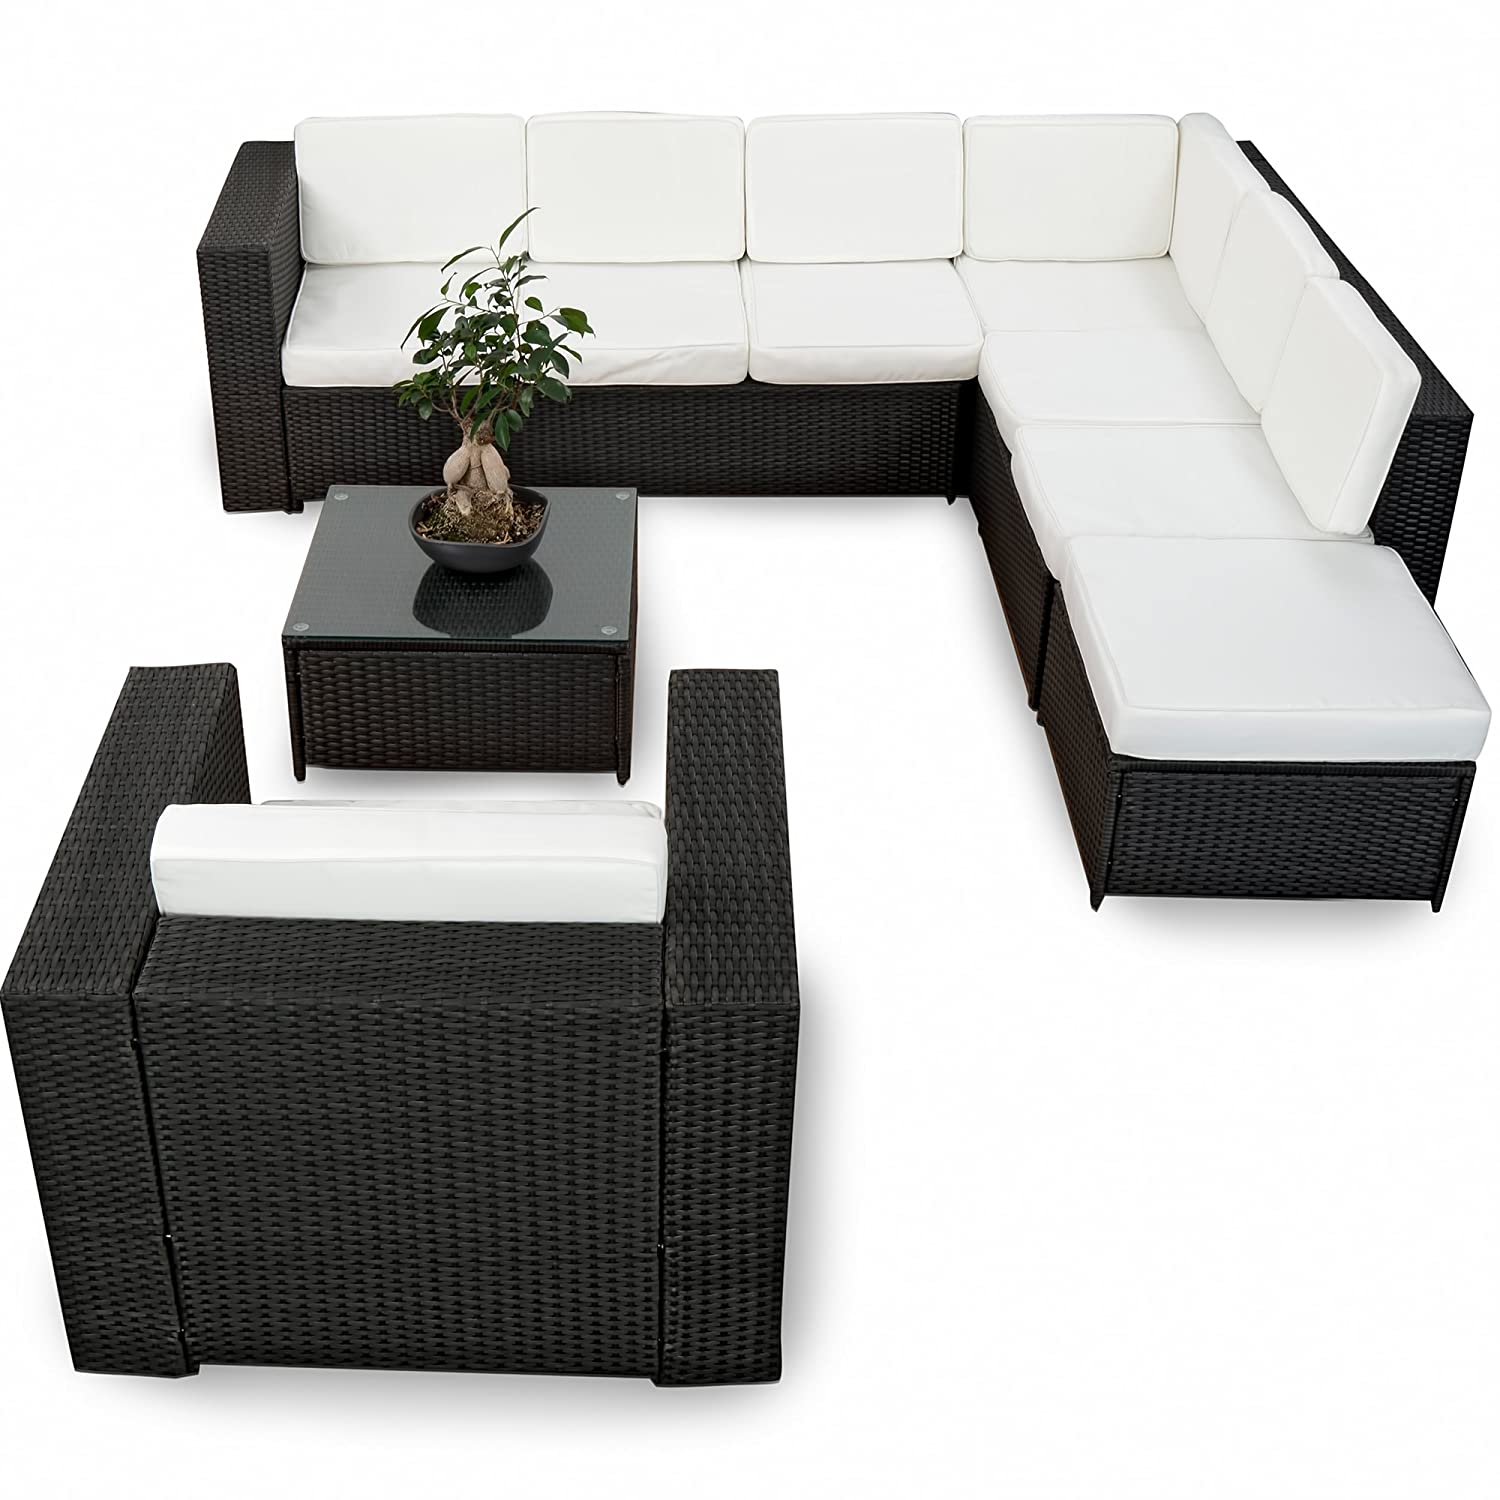 xinro 23tlg gartenm bel lounge set g nstig 1x 1er. Black Bedroom Furniture Sets. Home Design Ideas